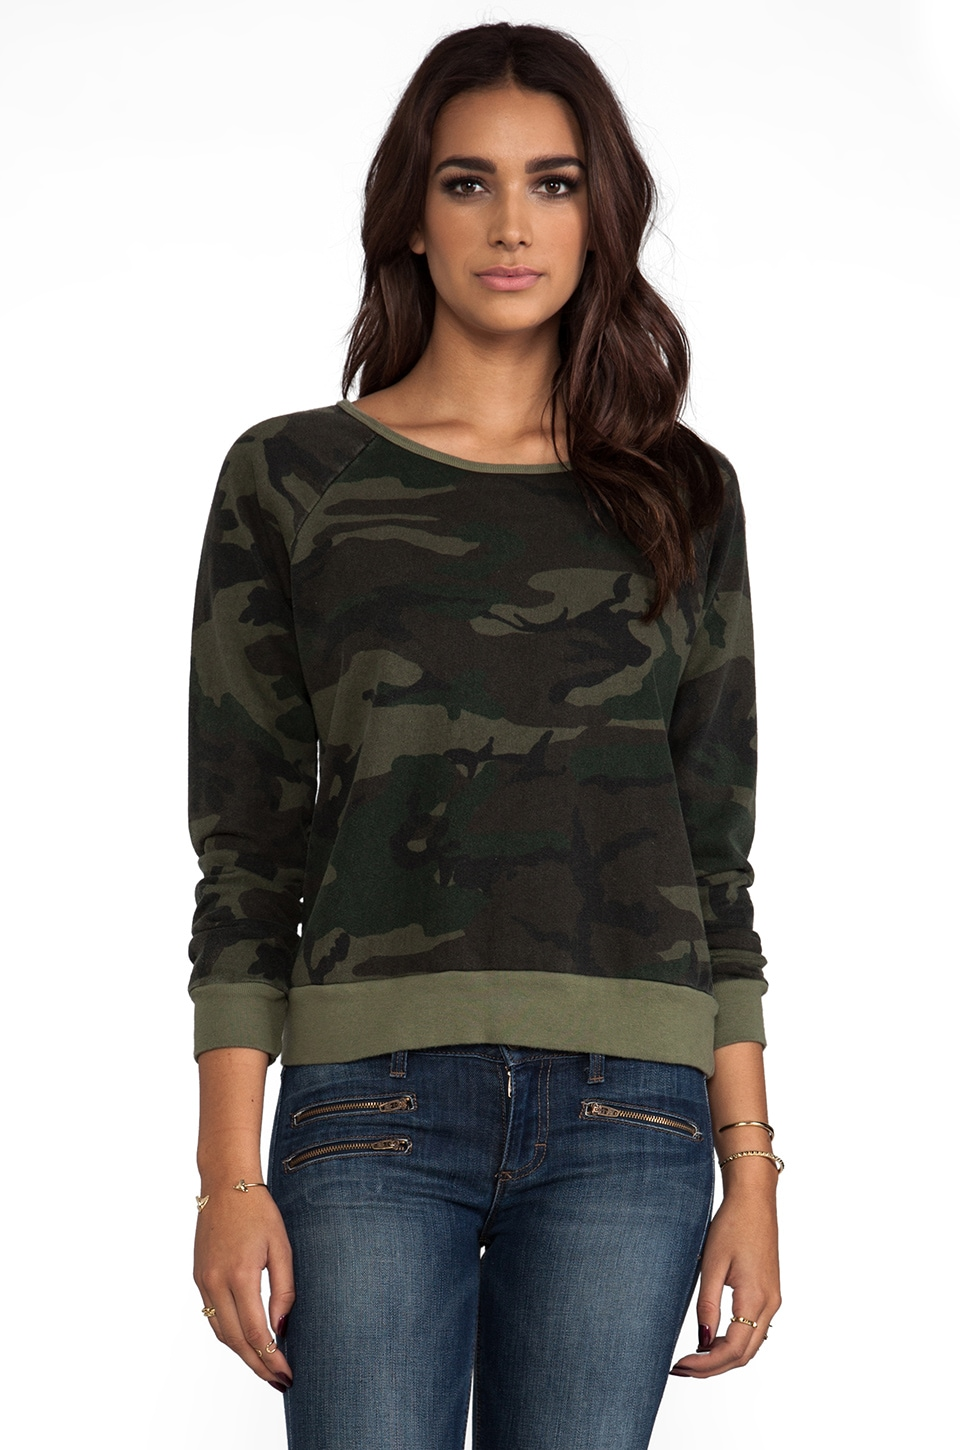 TEXTILE Elizabeth and James Perfect Sweatshirt in Olive Camo